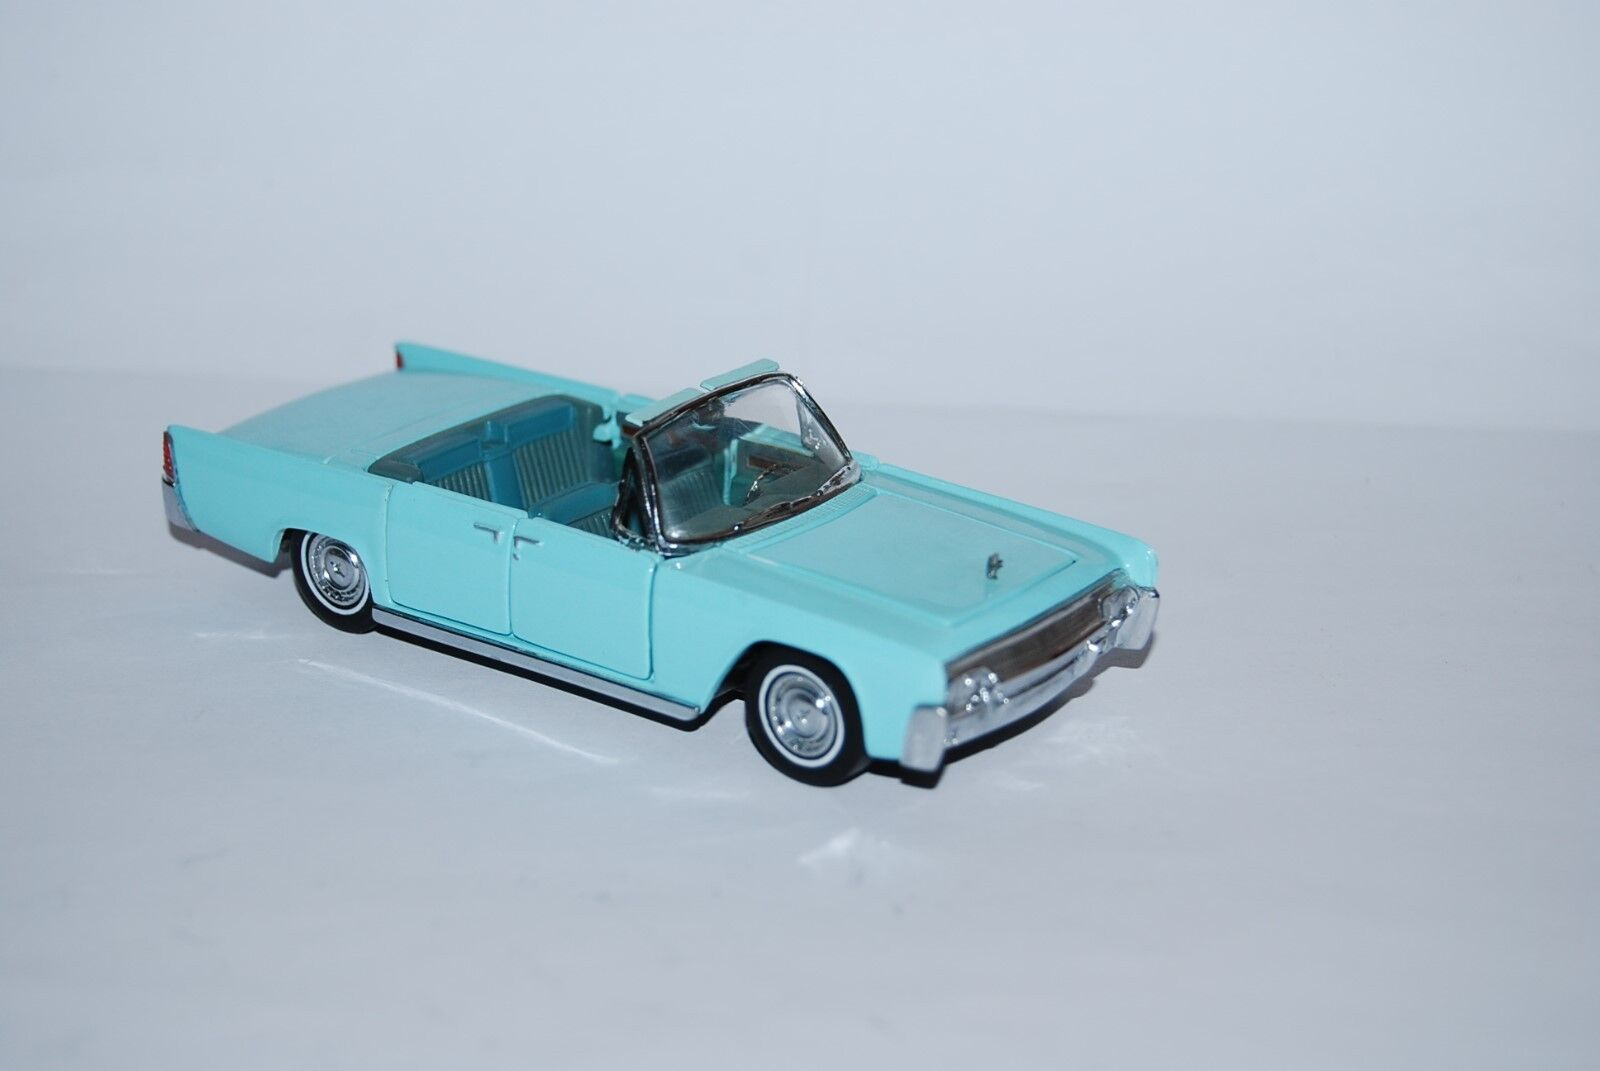 FRANKLIN MINT LINCOLN CONTINENTAL CONTINENTAL CONTINENTAL COVERTIBLE 1961 SCALE 1 43 b944e3